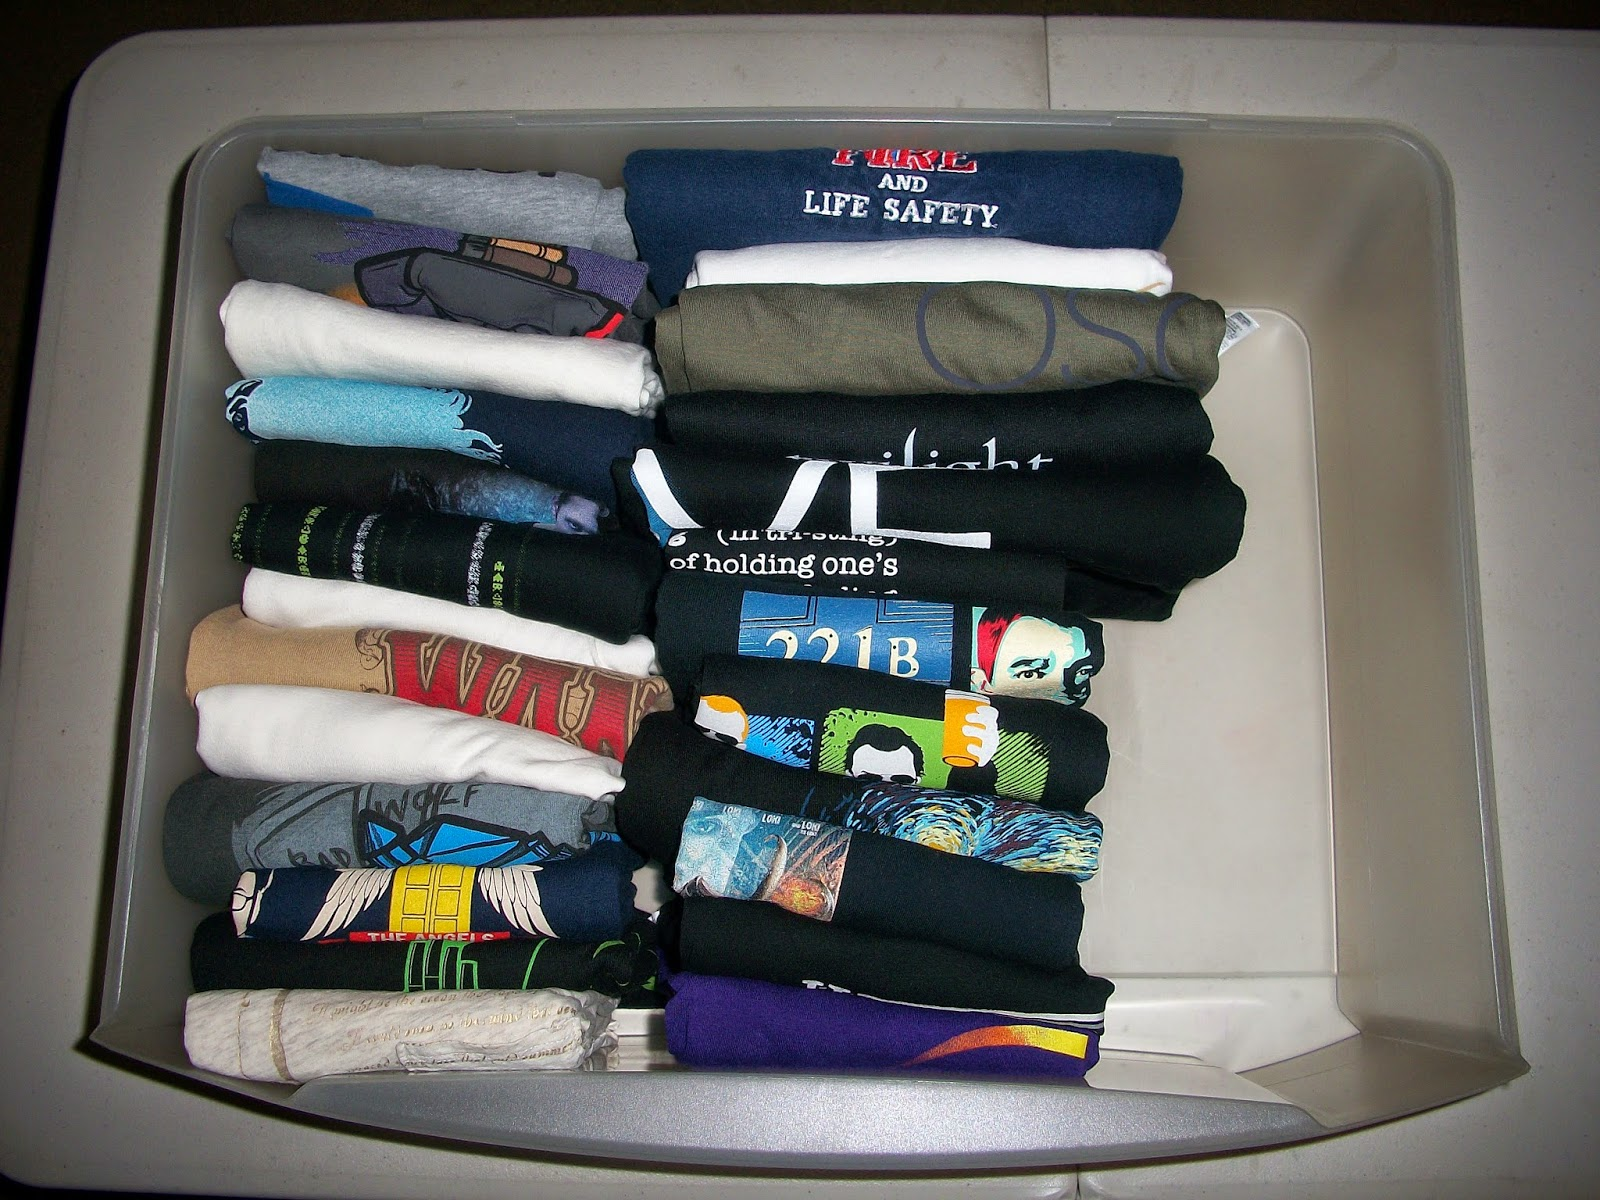 Shirts folded and stored in a drawer like a filing cabinet